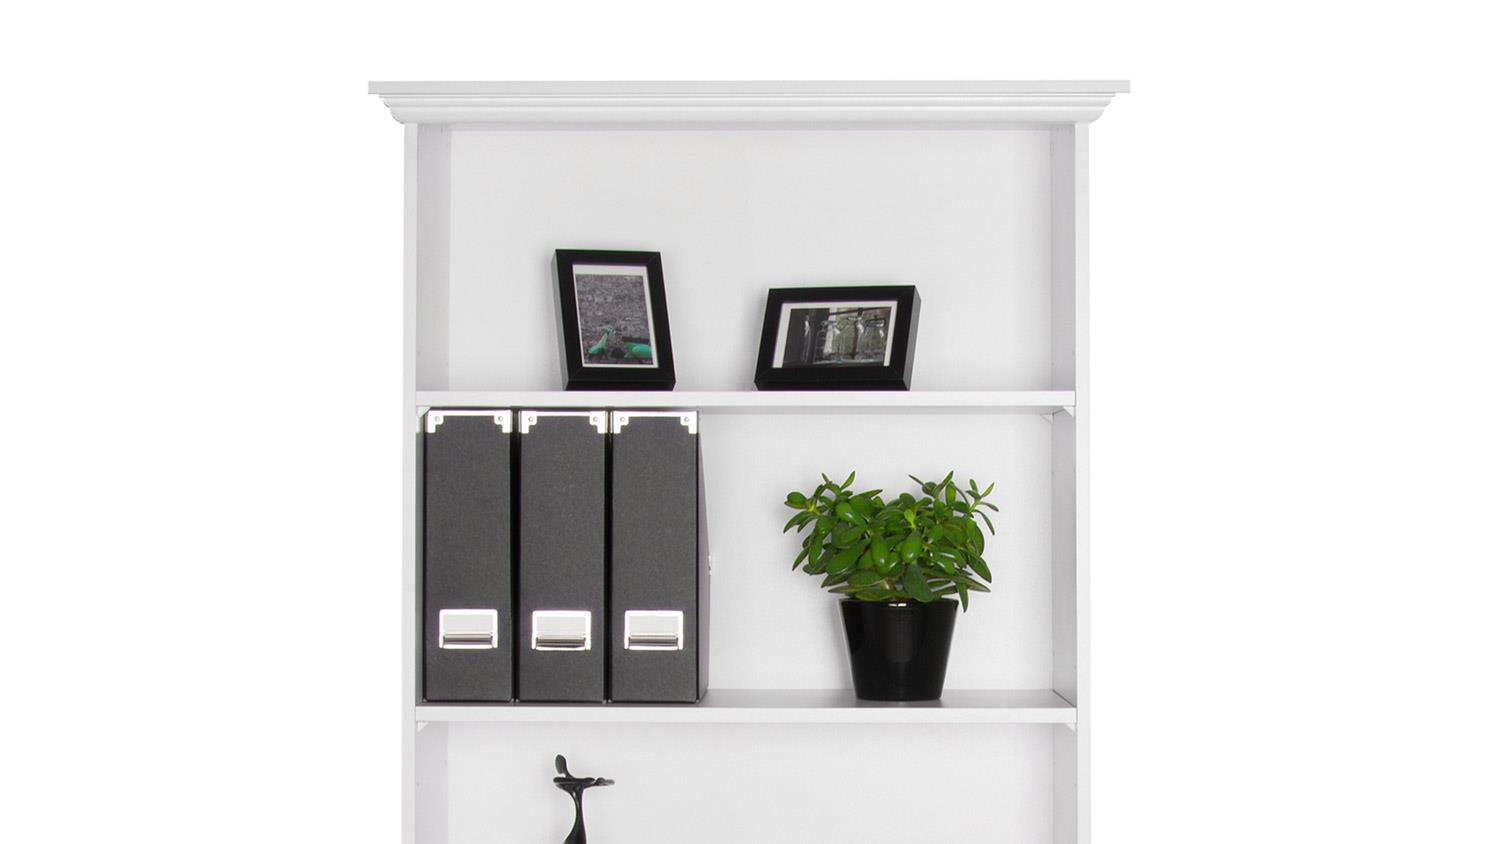 Regal Landhausstil Weiß Regal Landwood Bücherregal In Weiß Mit 5 Fächern 80 Cm